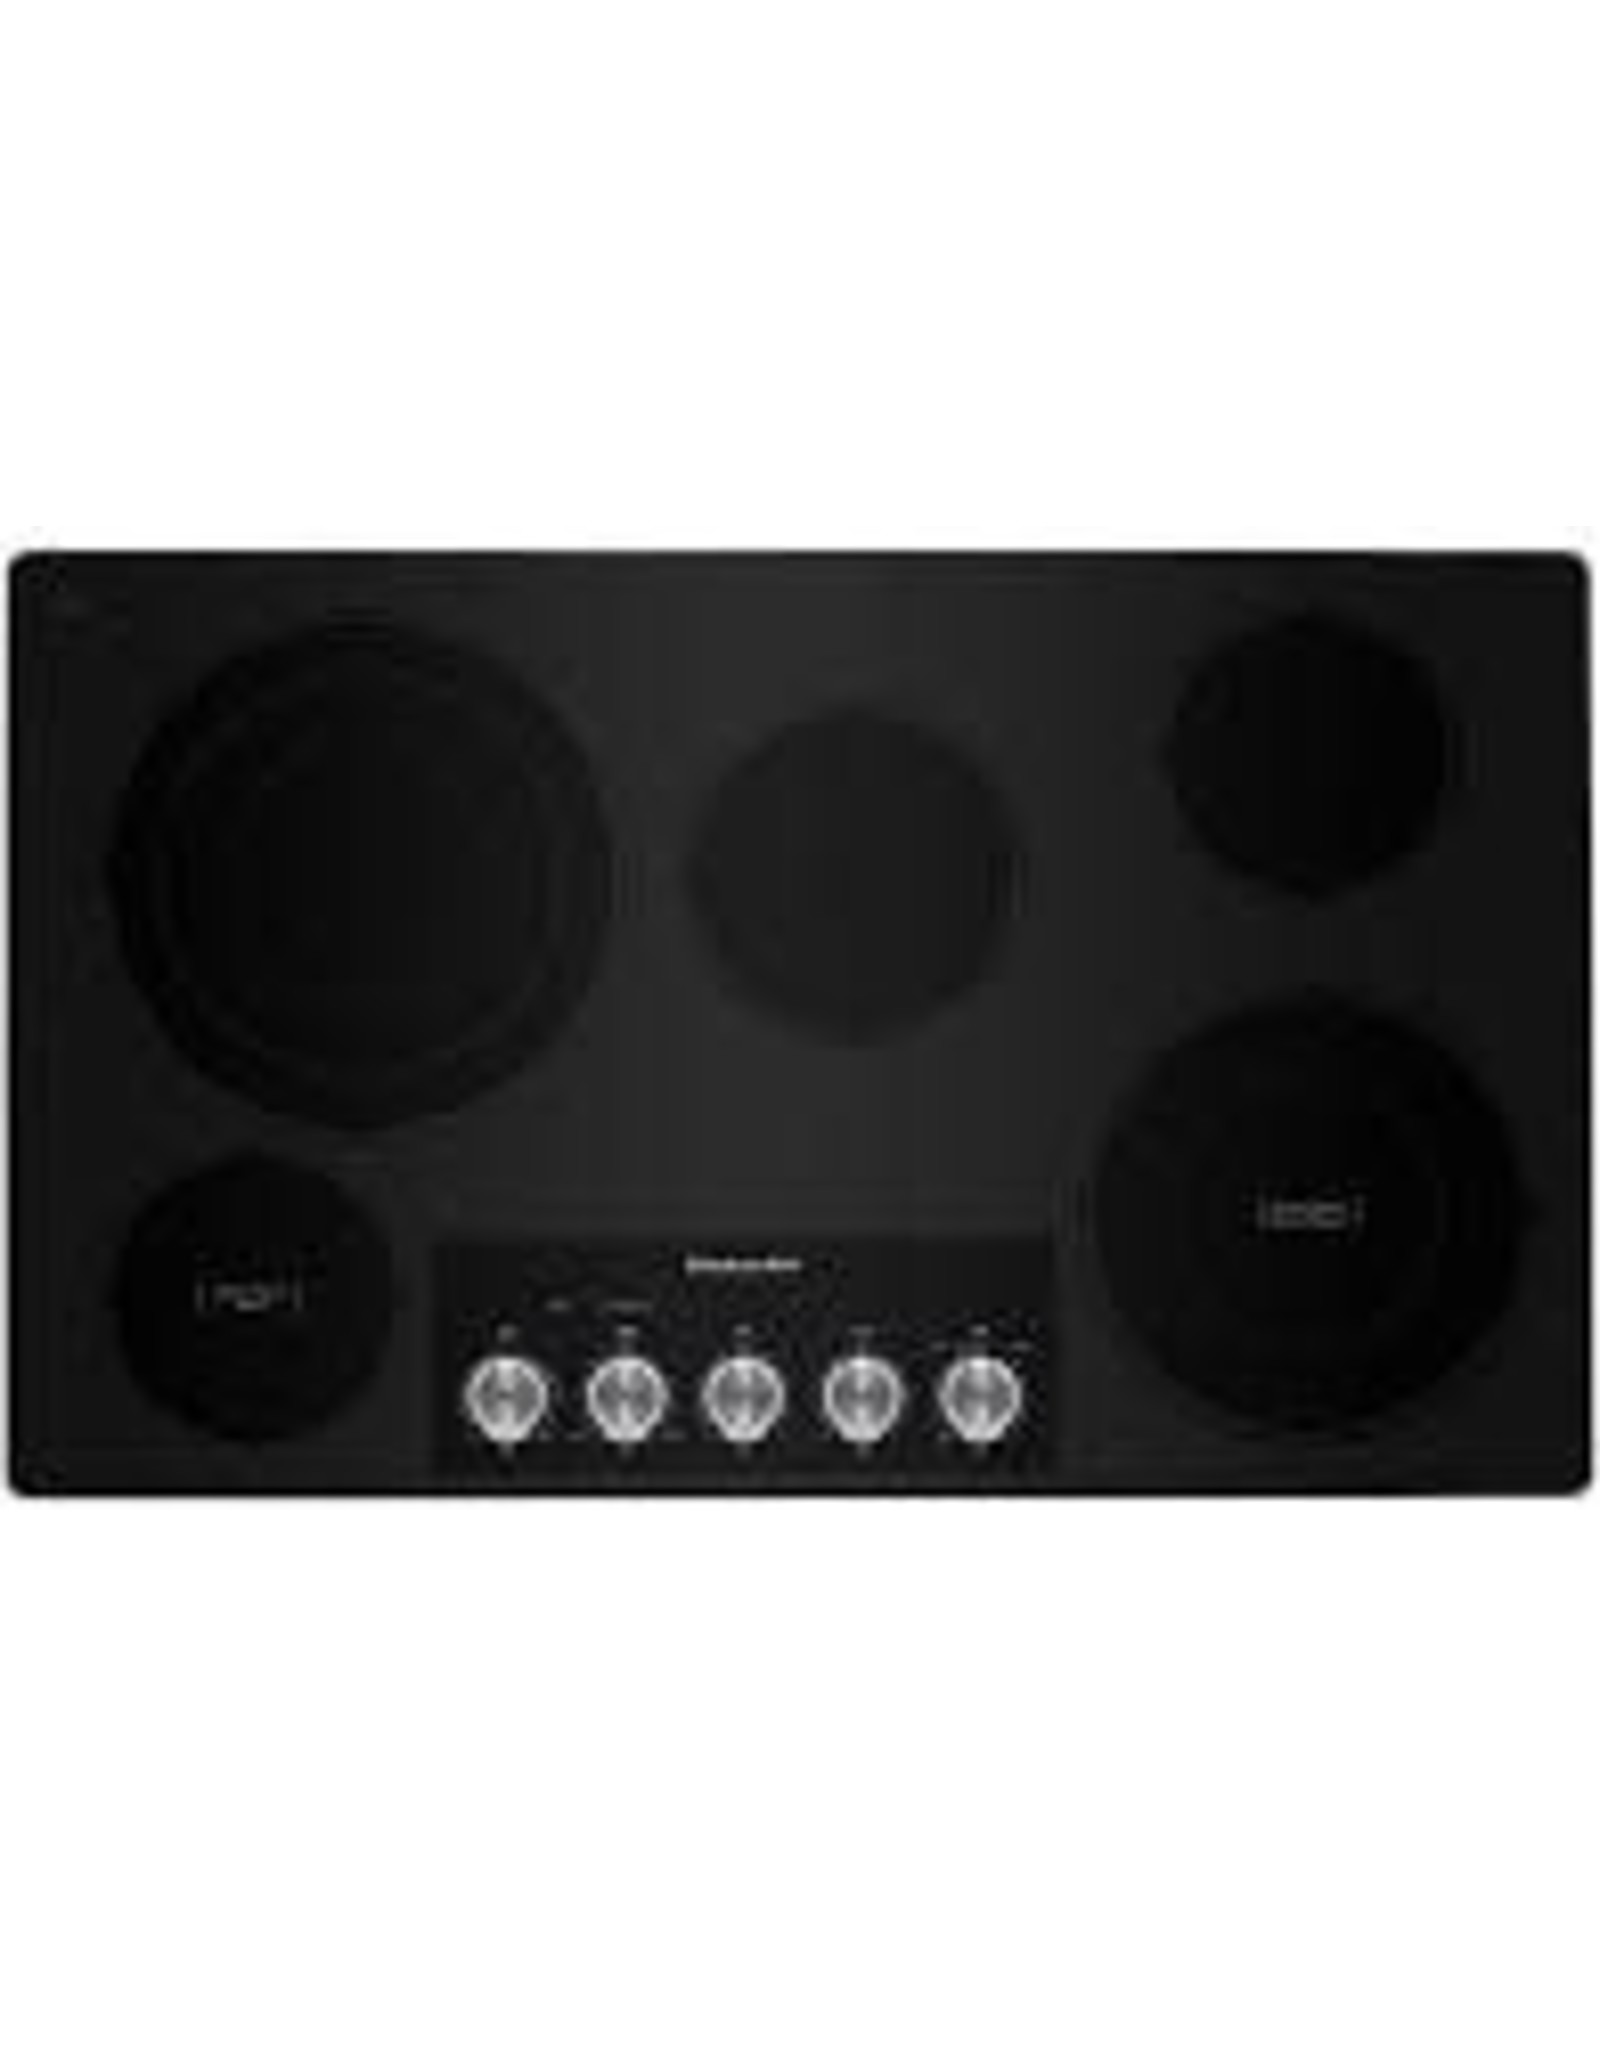 """KGES556HSS KitchenAid - 36"""" Built-In Electric Cooktop - Stainless steel"""